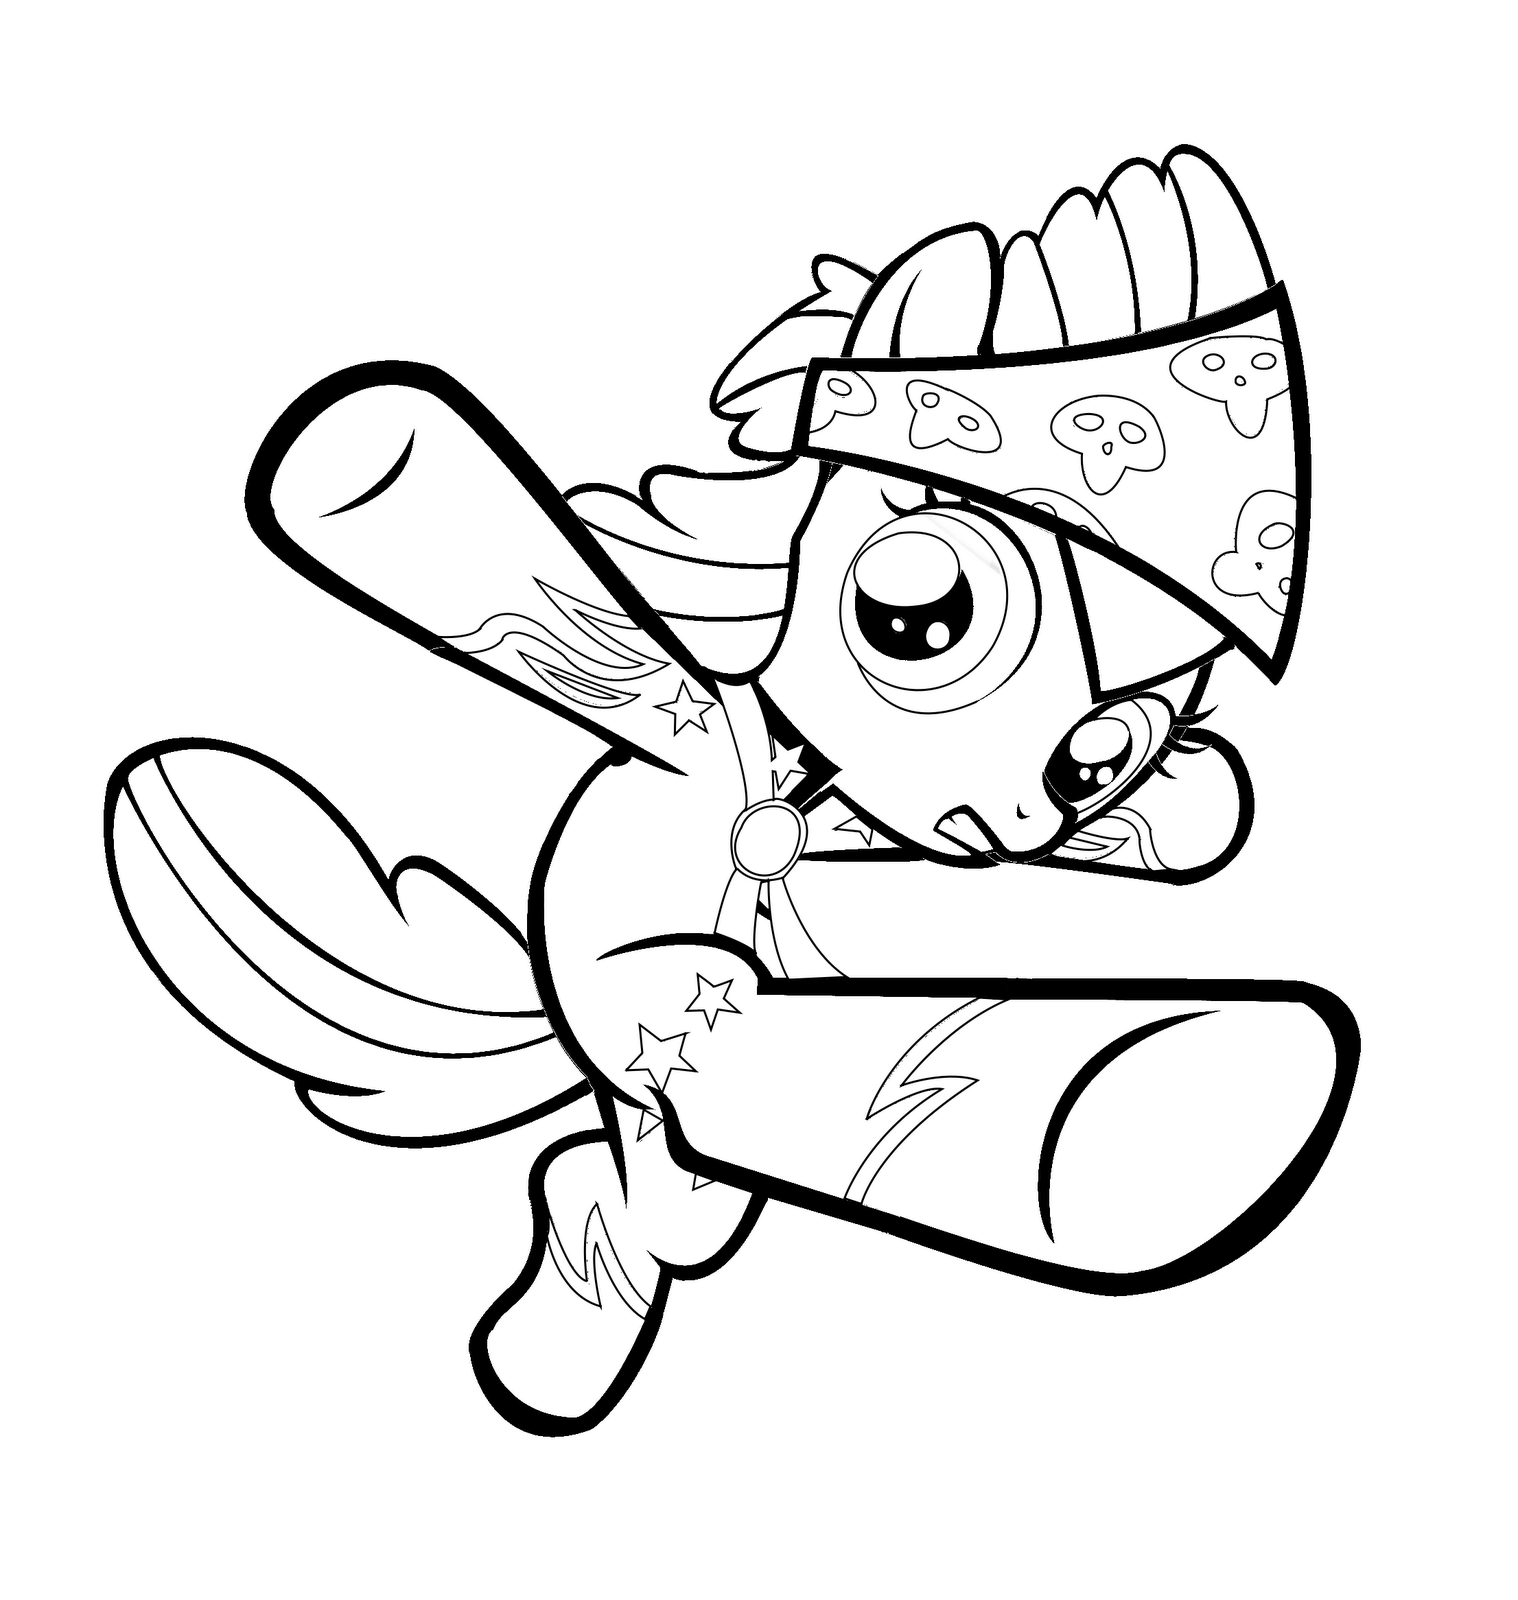 scootaloo coloring page my little pony scootaloo coloring pages at getcolorings page coloring scootaloo